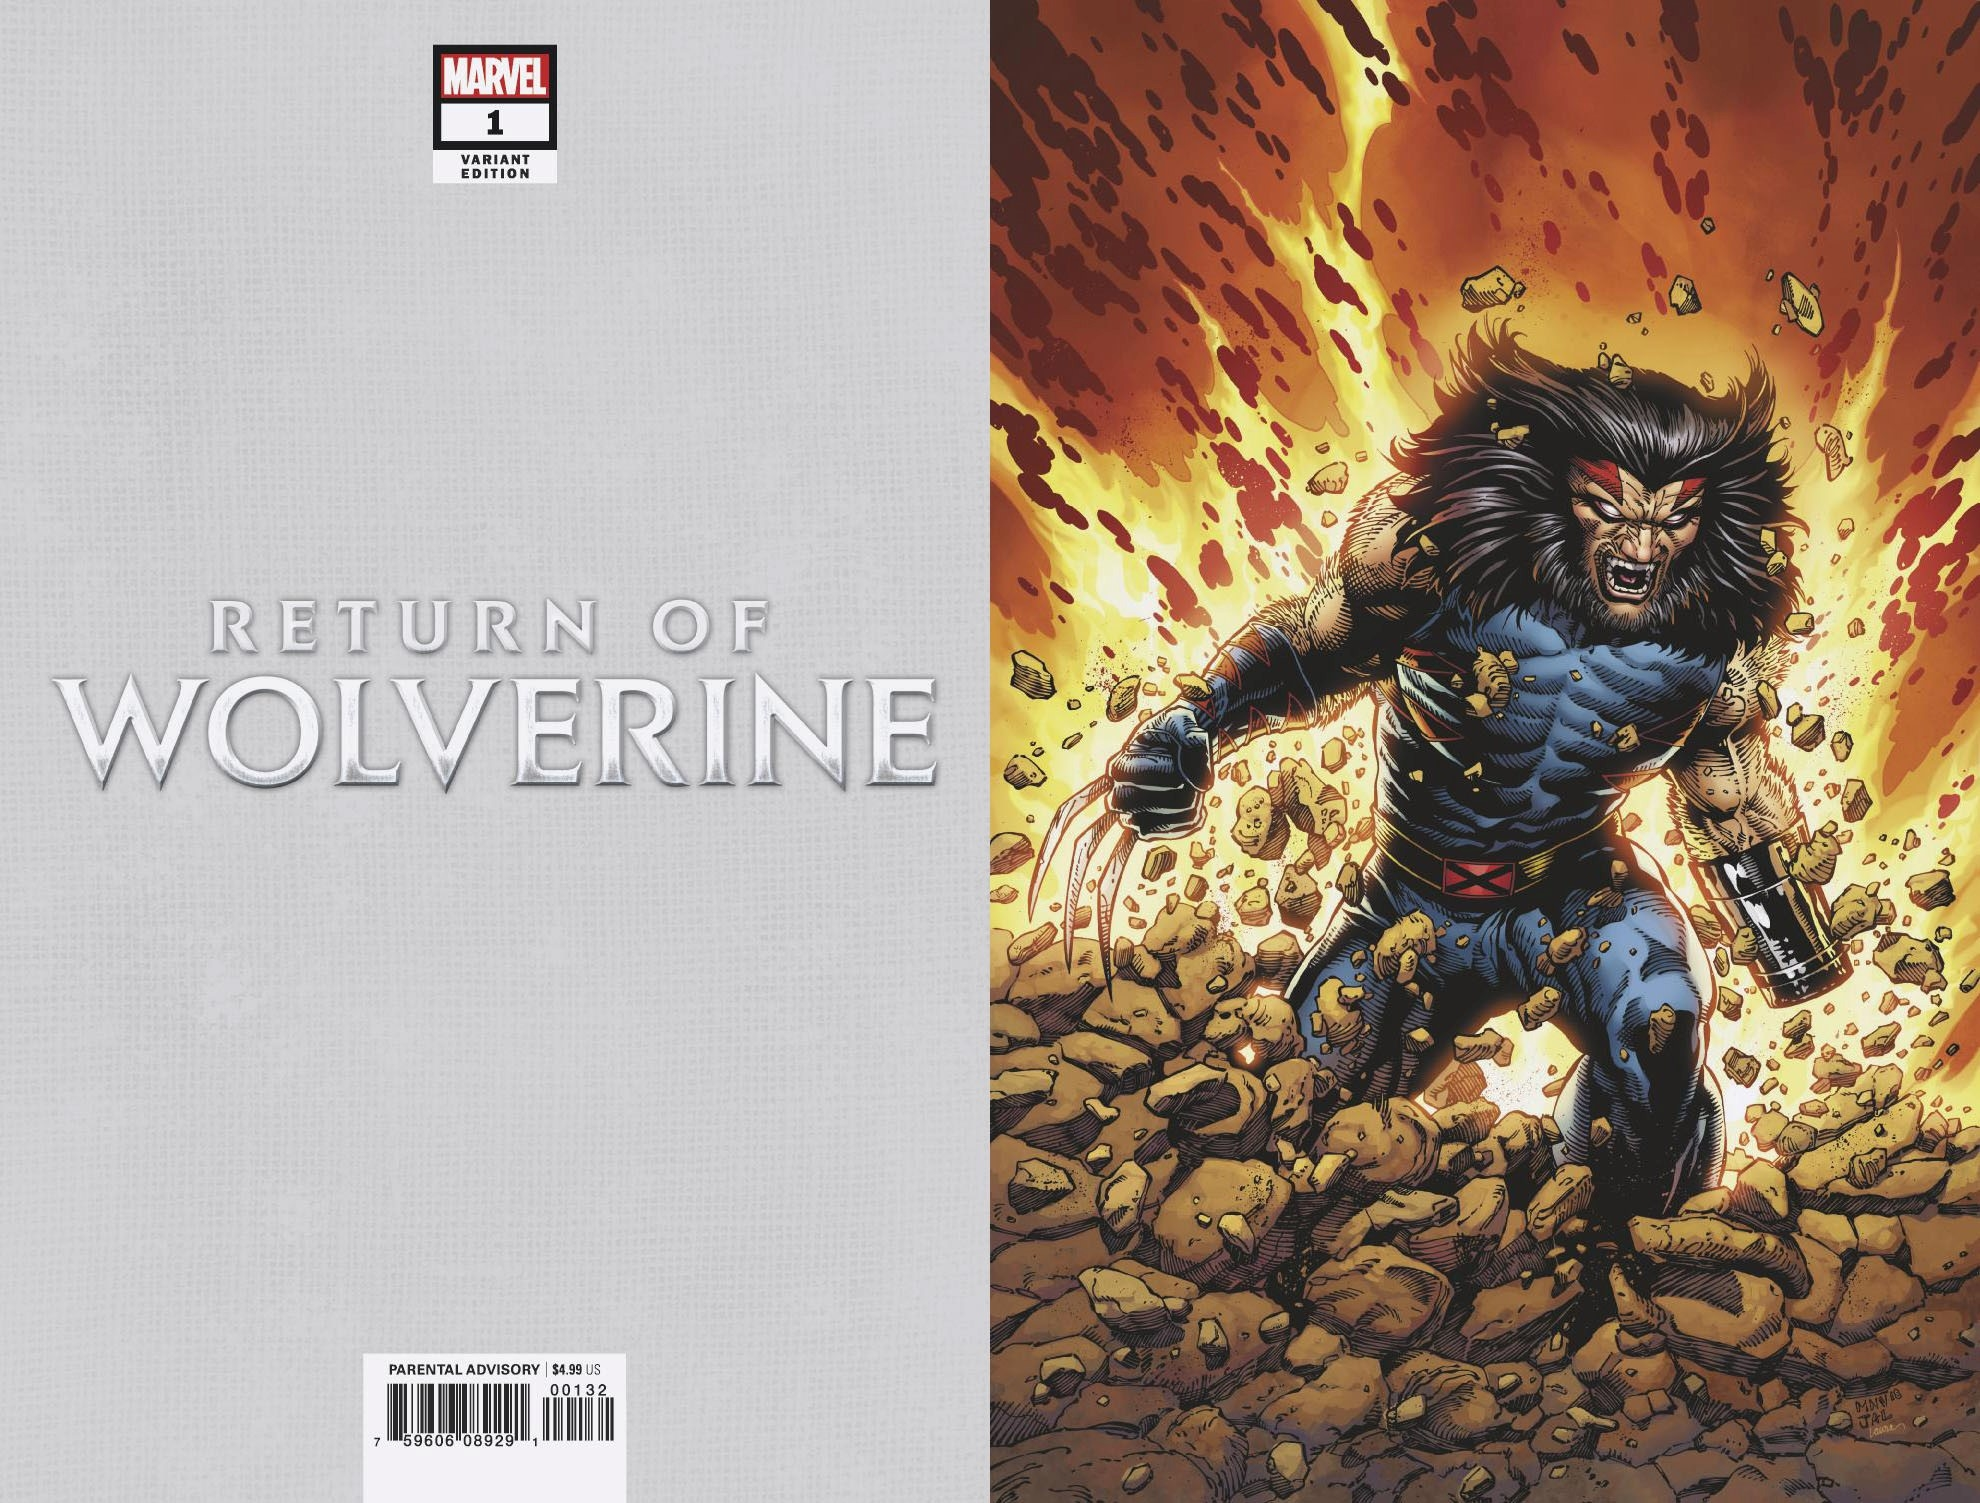 RETURN OF WOLVERINE #1 (OF 5) MCNIVEN AGE OF APOCALYPSE COST